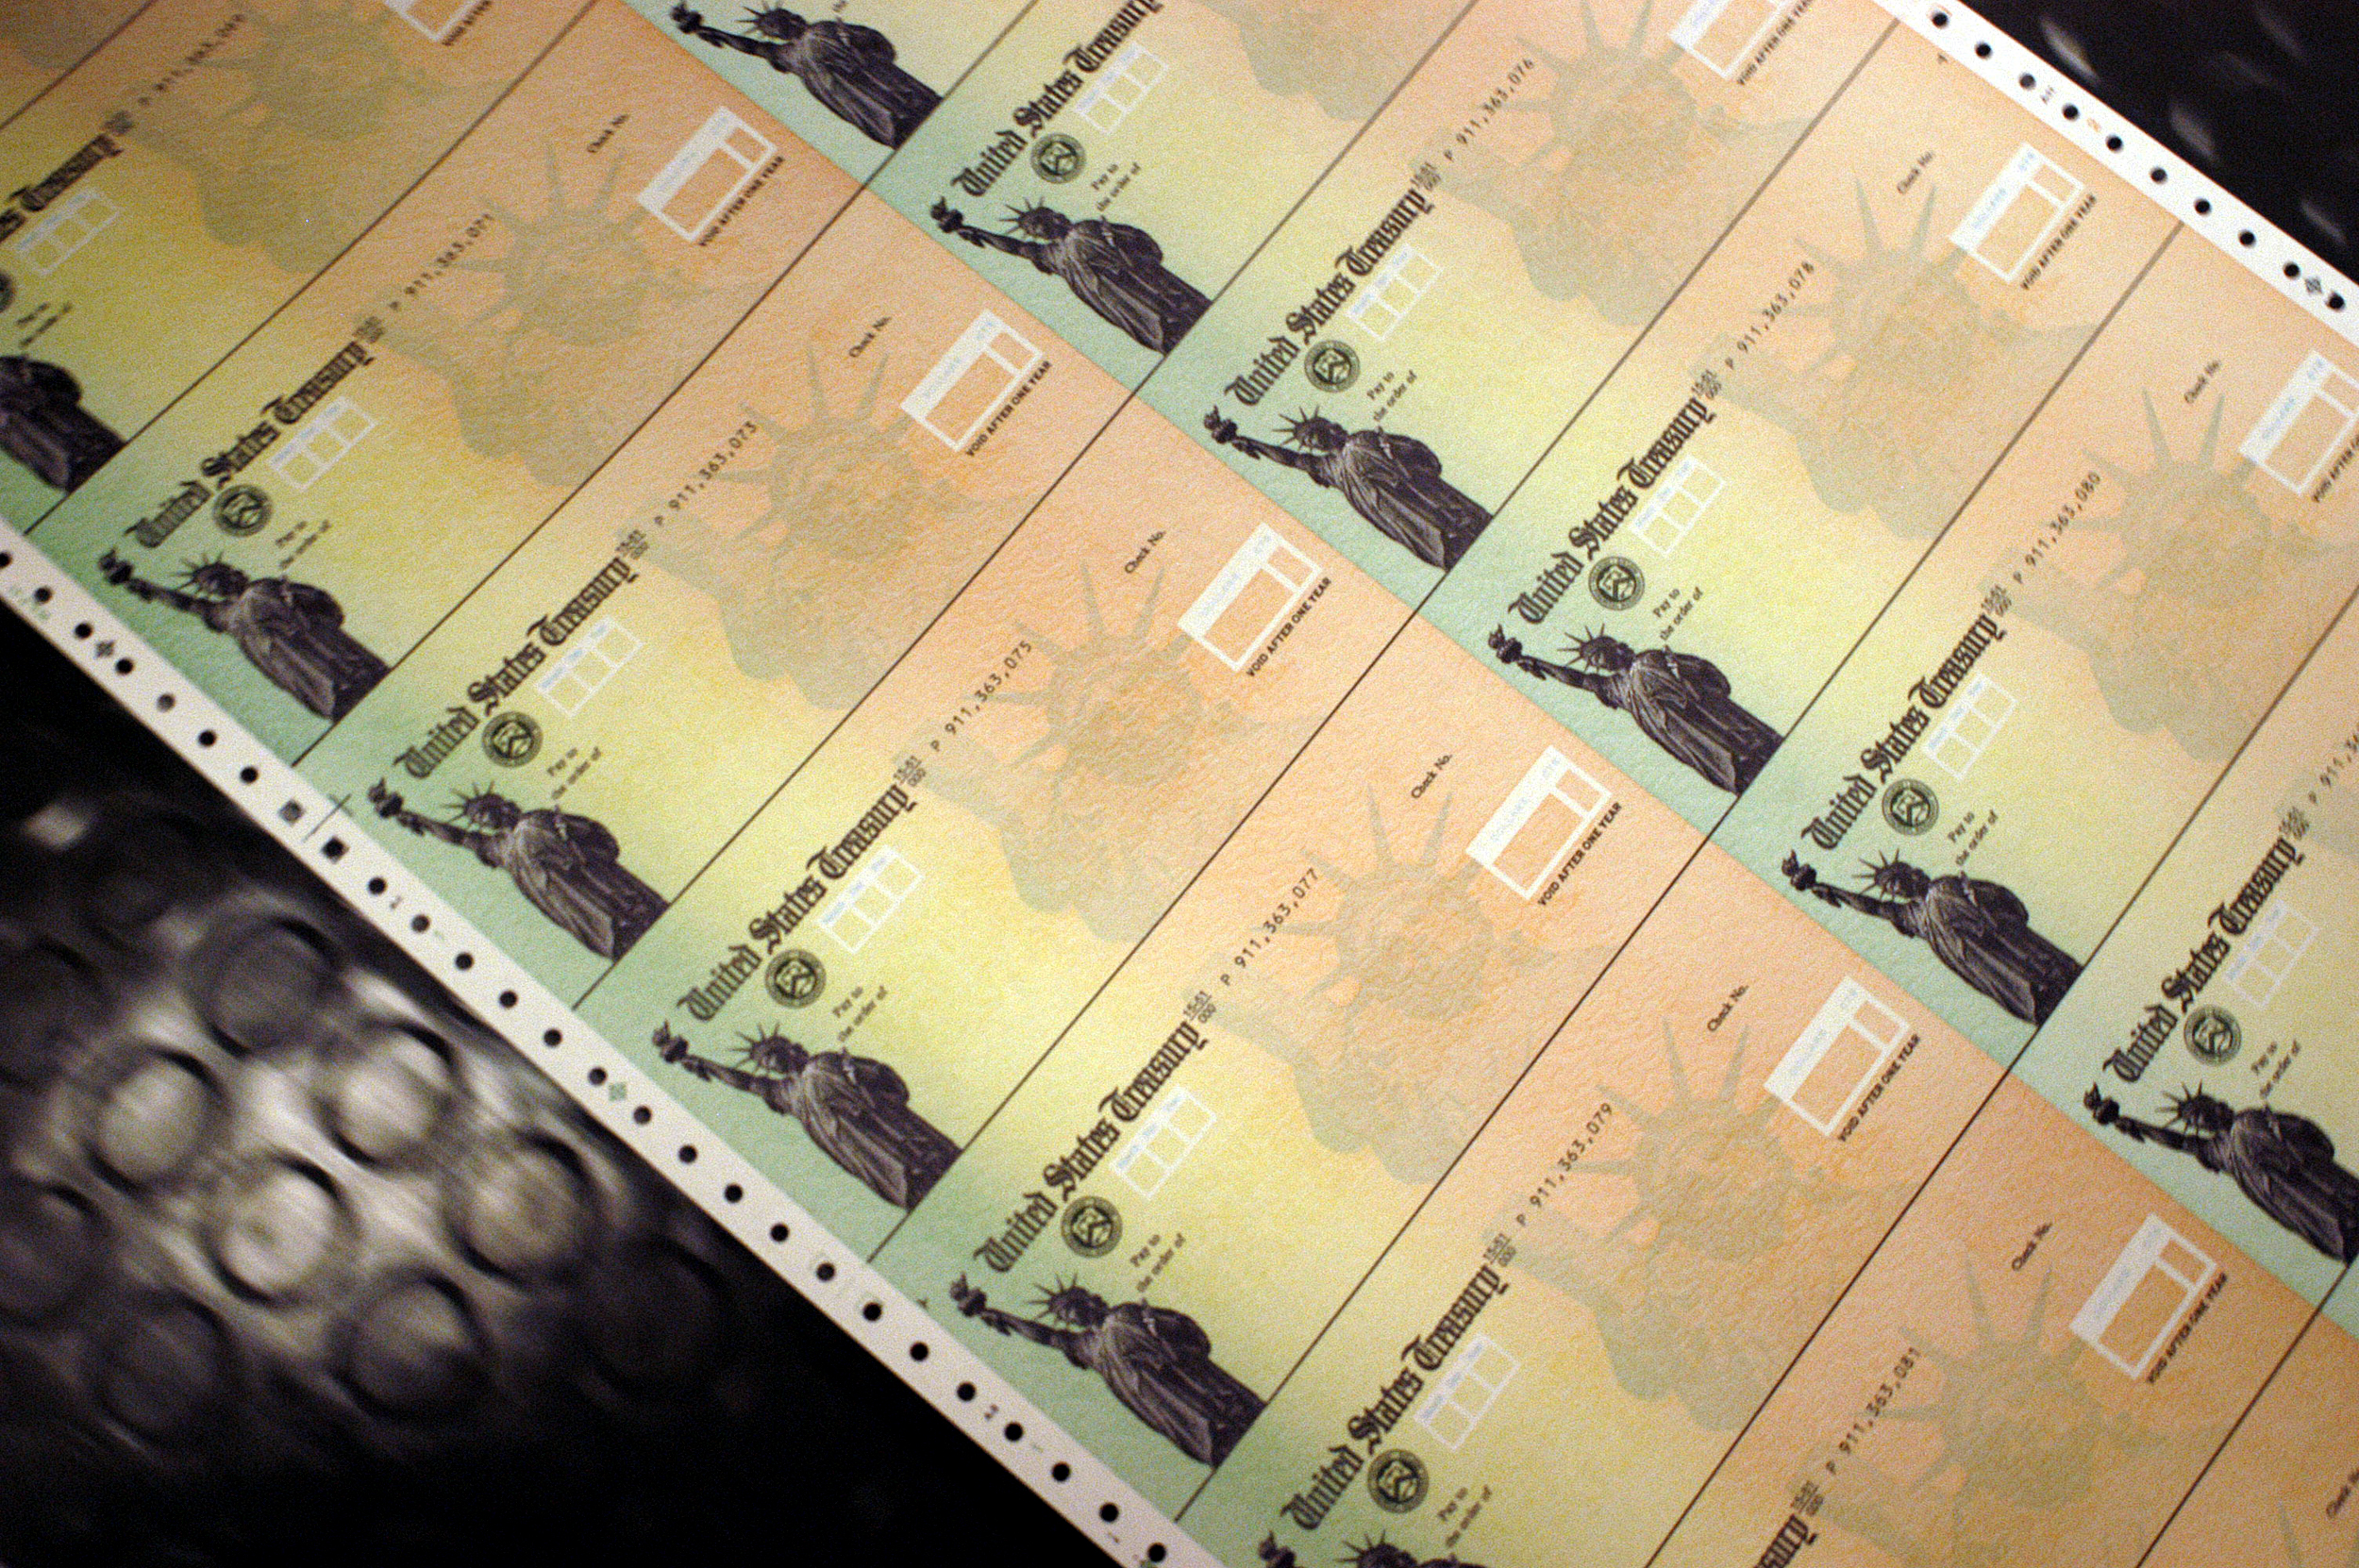 Stimulus checks are coming - here's how to make sure you get yours quickly